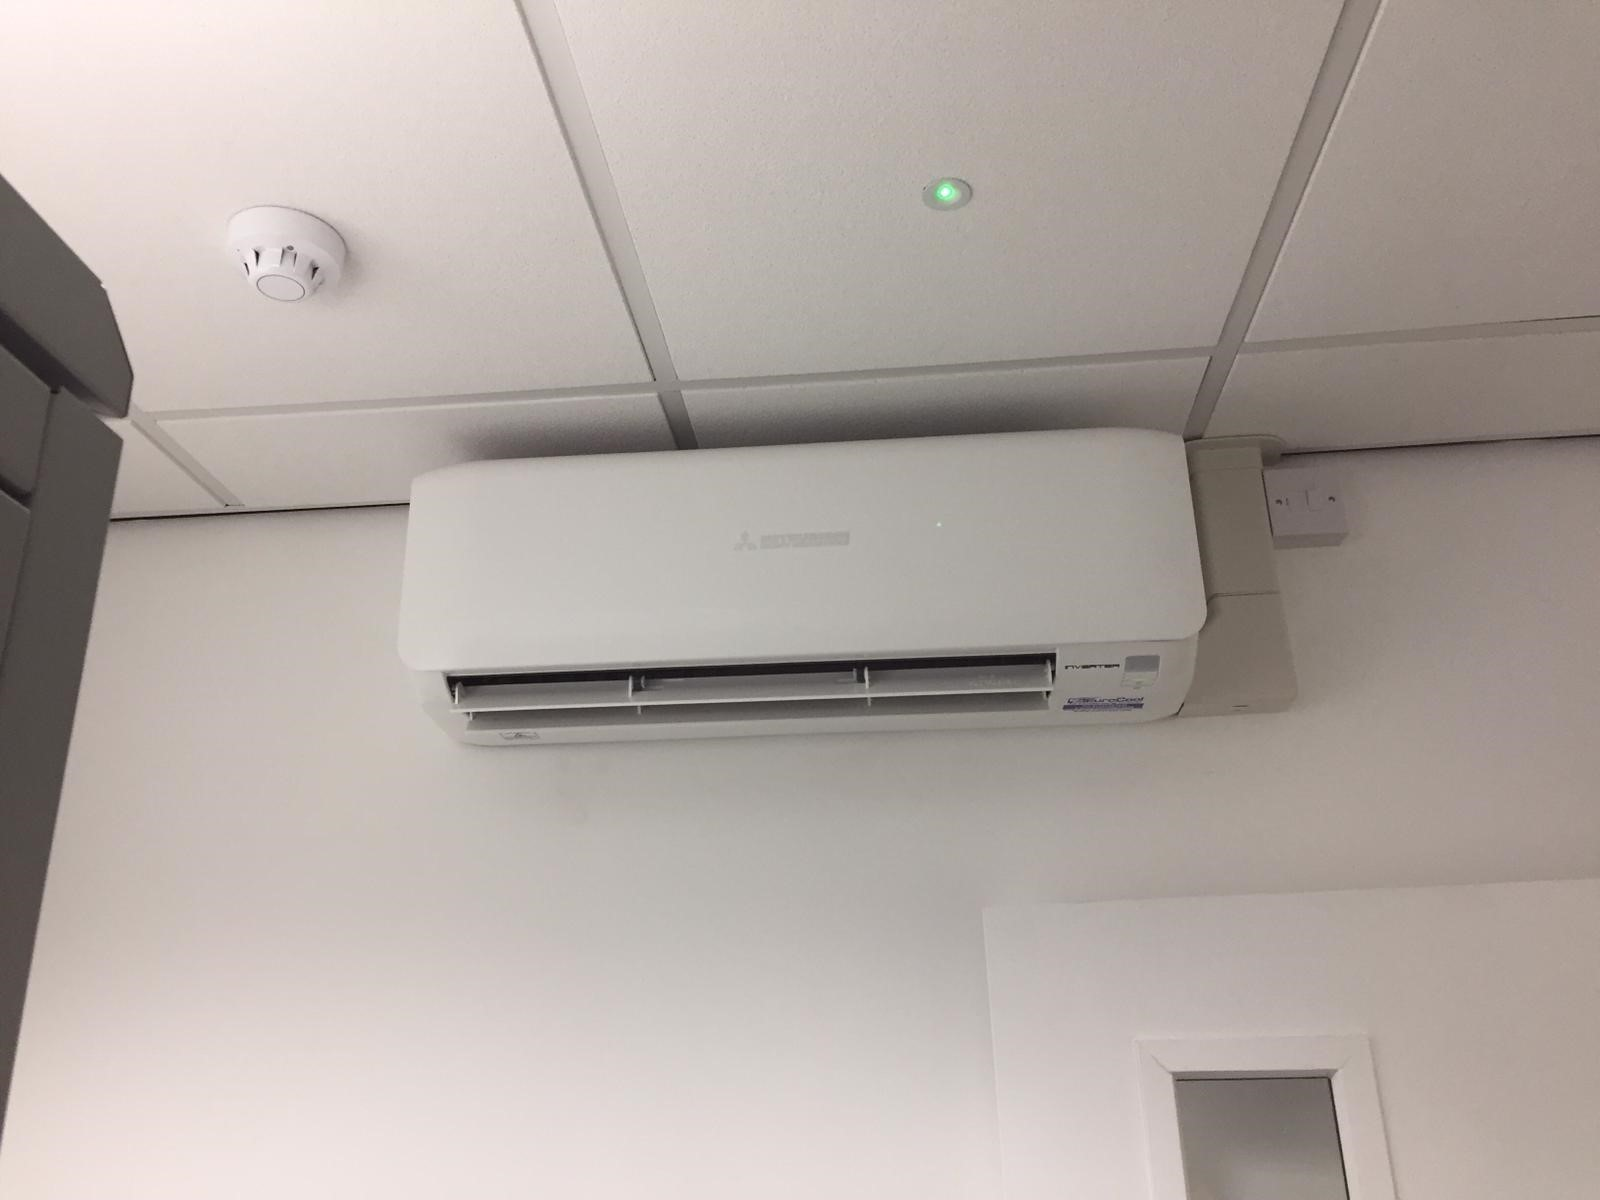 Server Room Air Conditioning